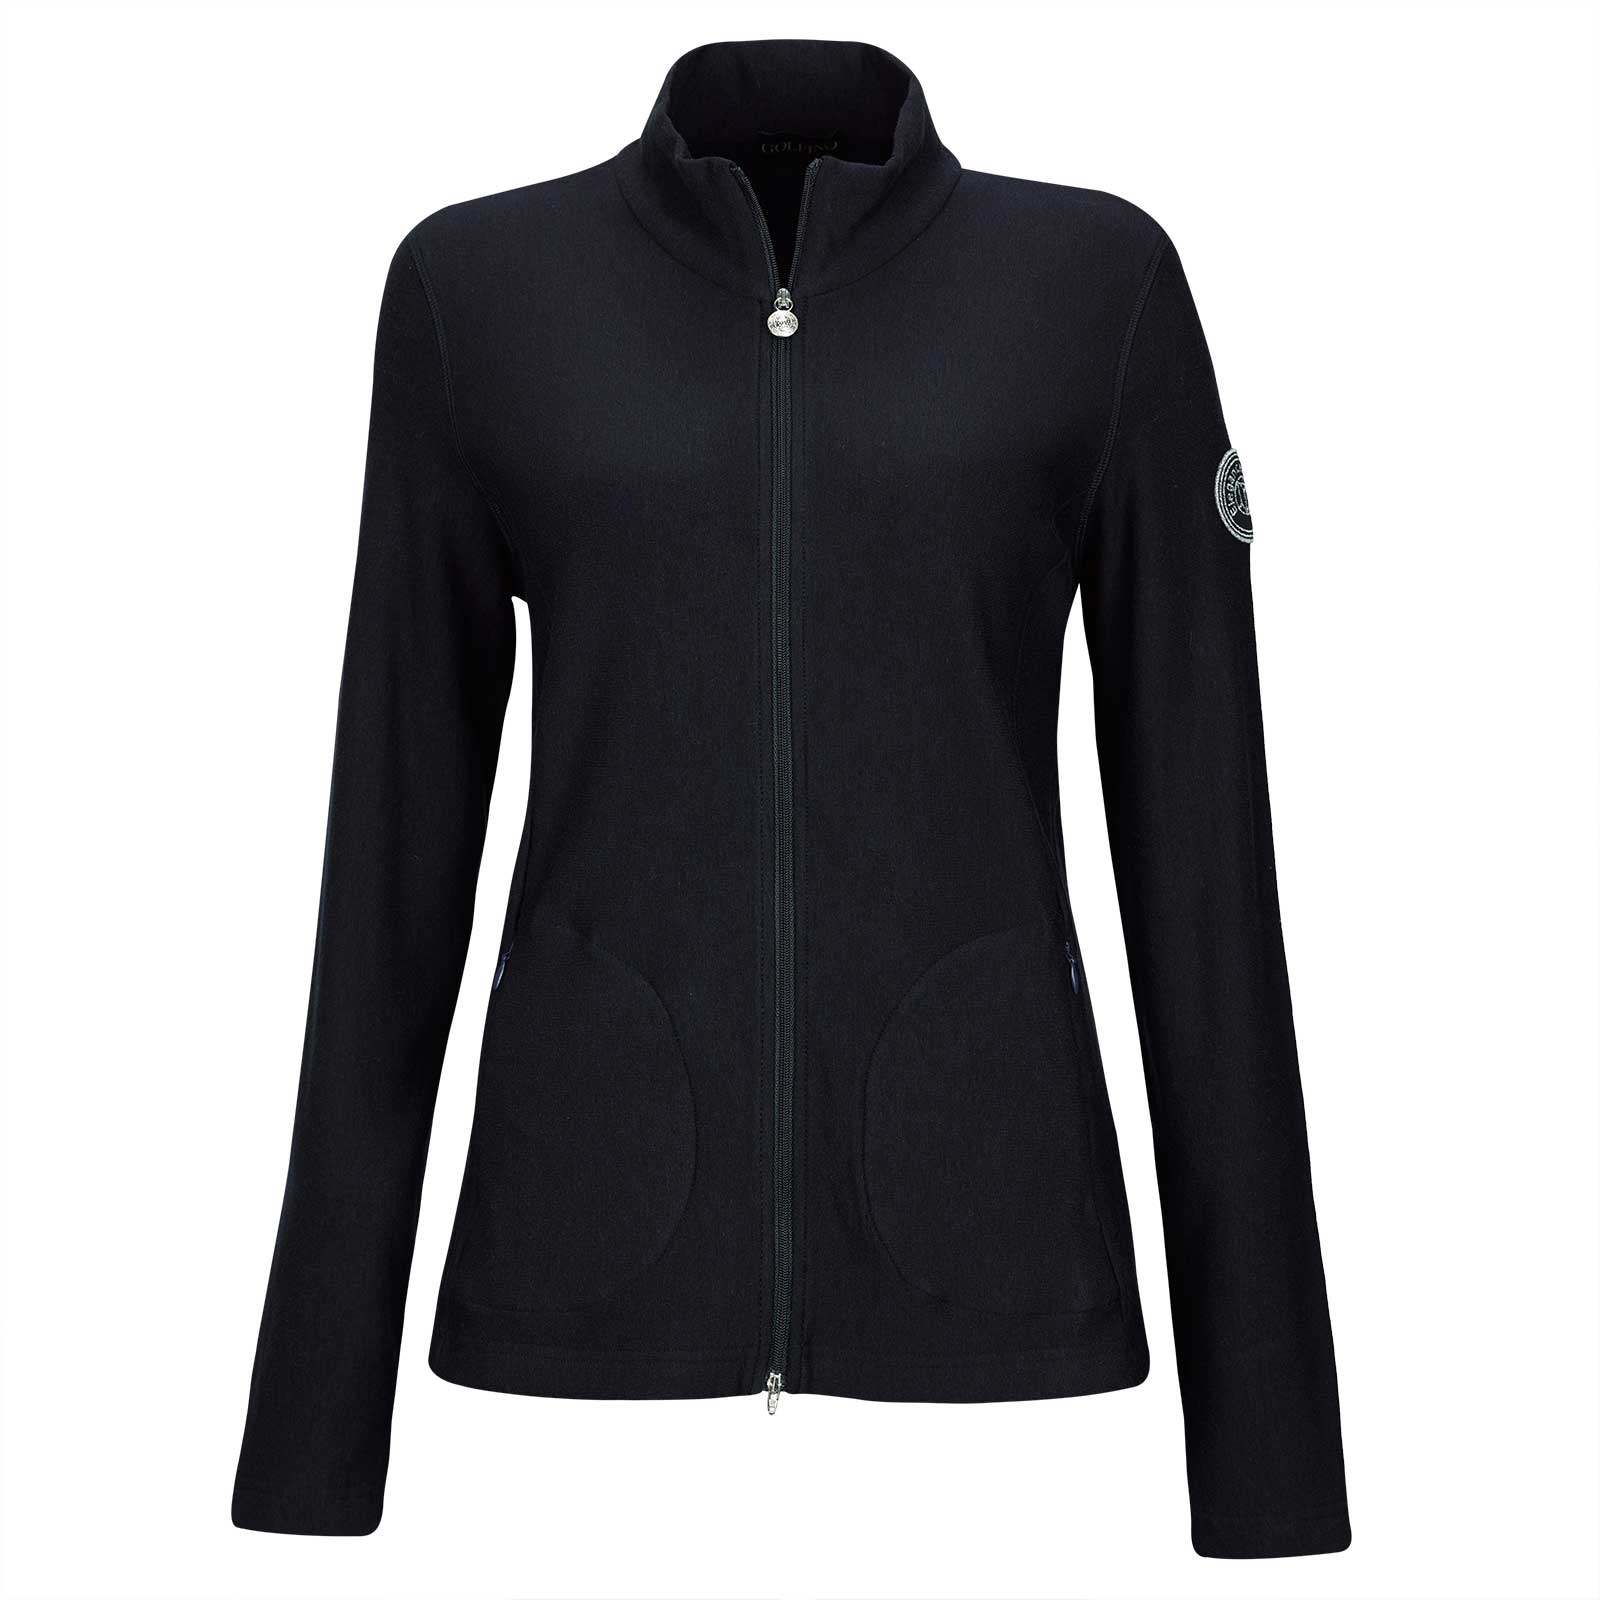 Ladies' zip jacket with Cold Protection function